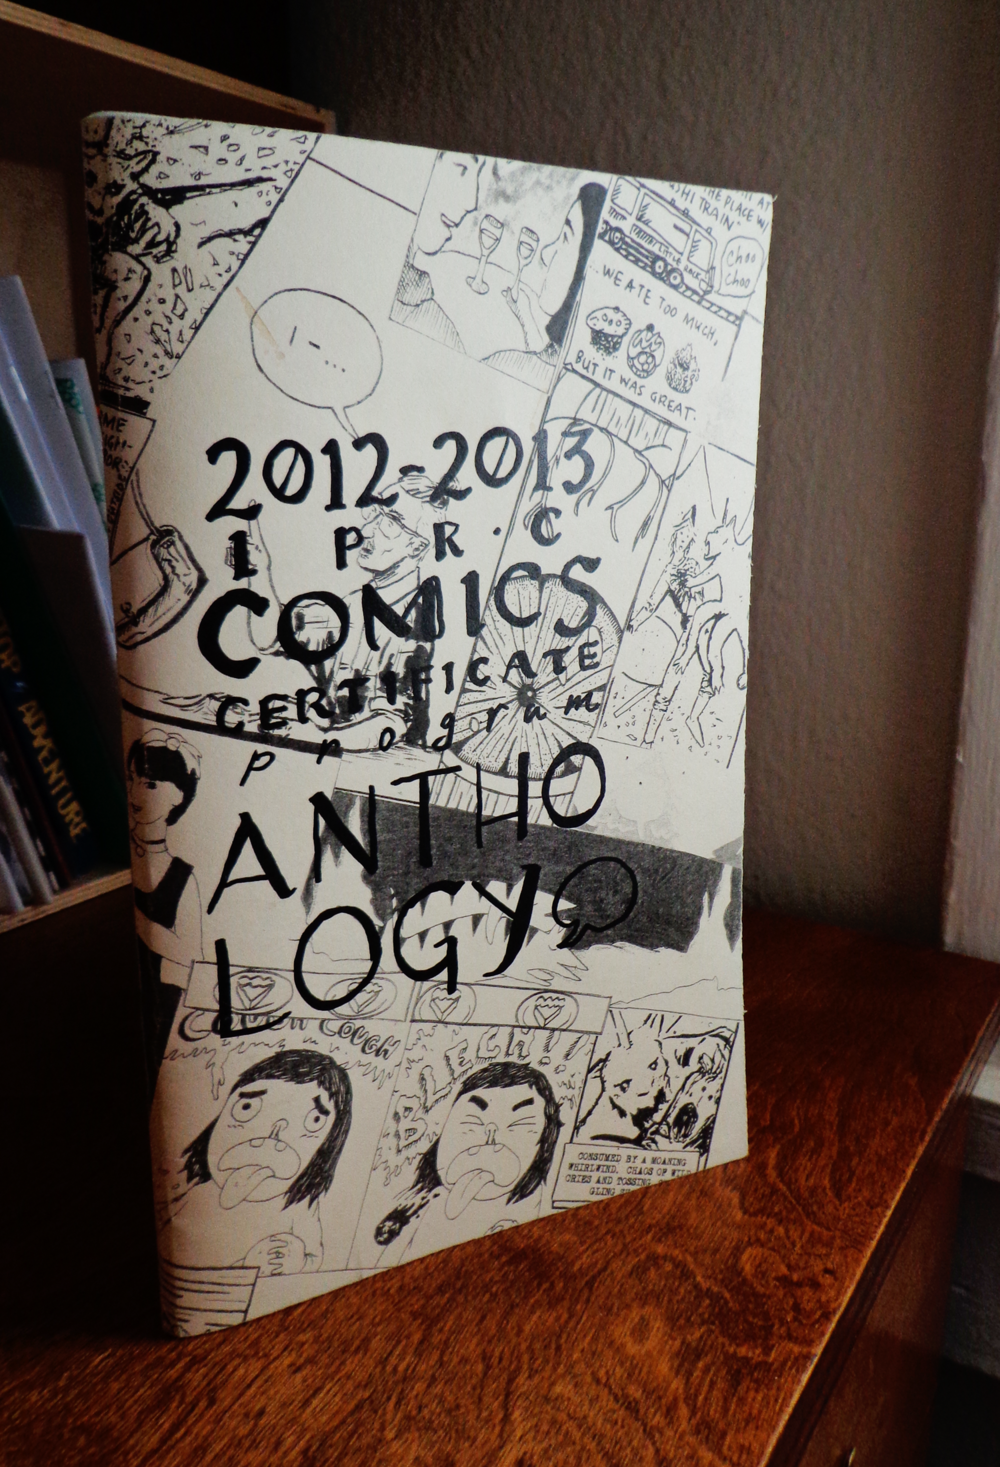 Cover, IPRC Comics Certiicate Program 2012-2013 comix anthology, b&w, 32 pages